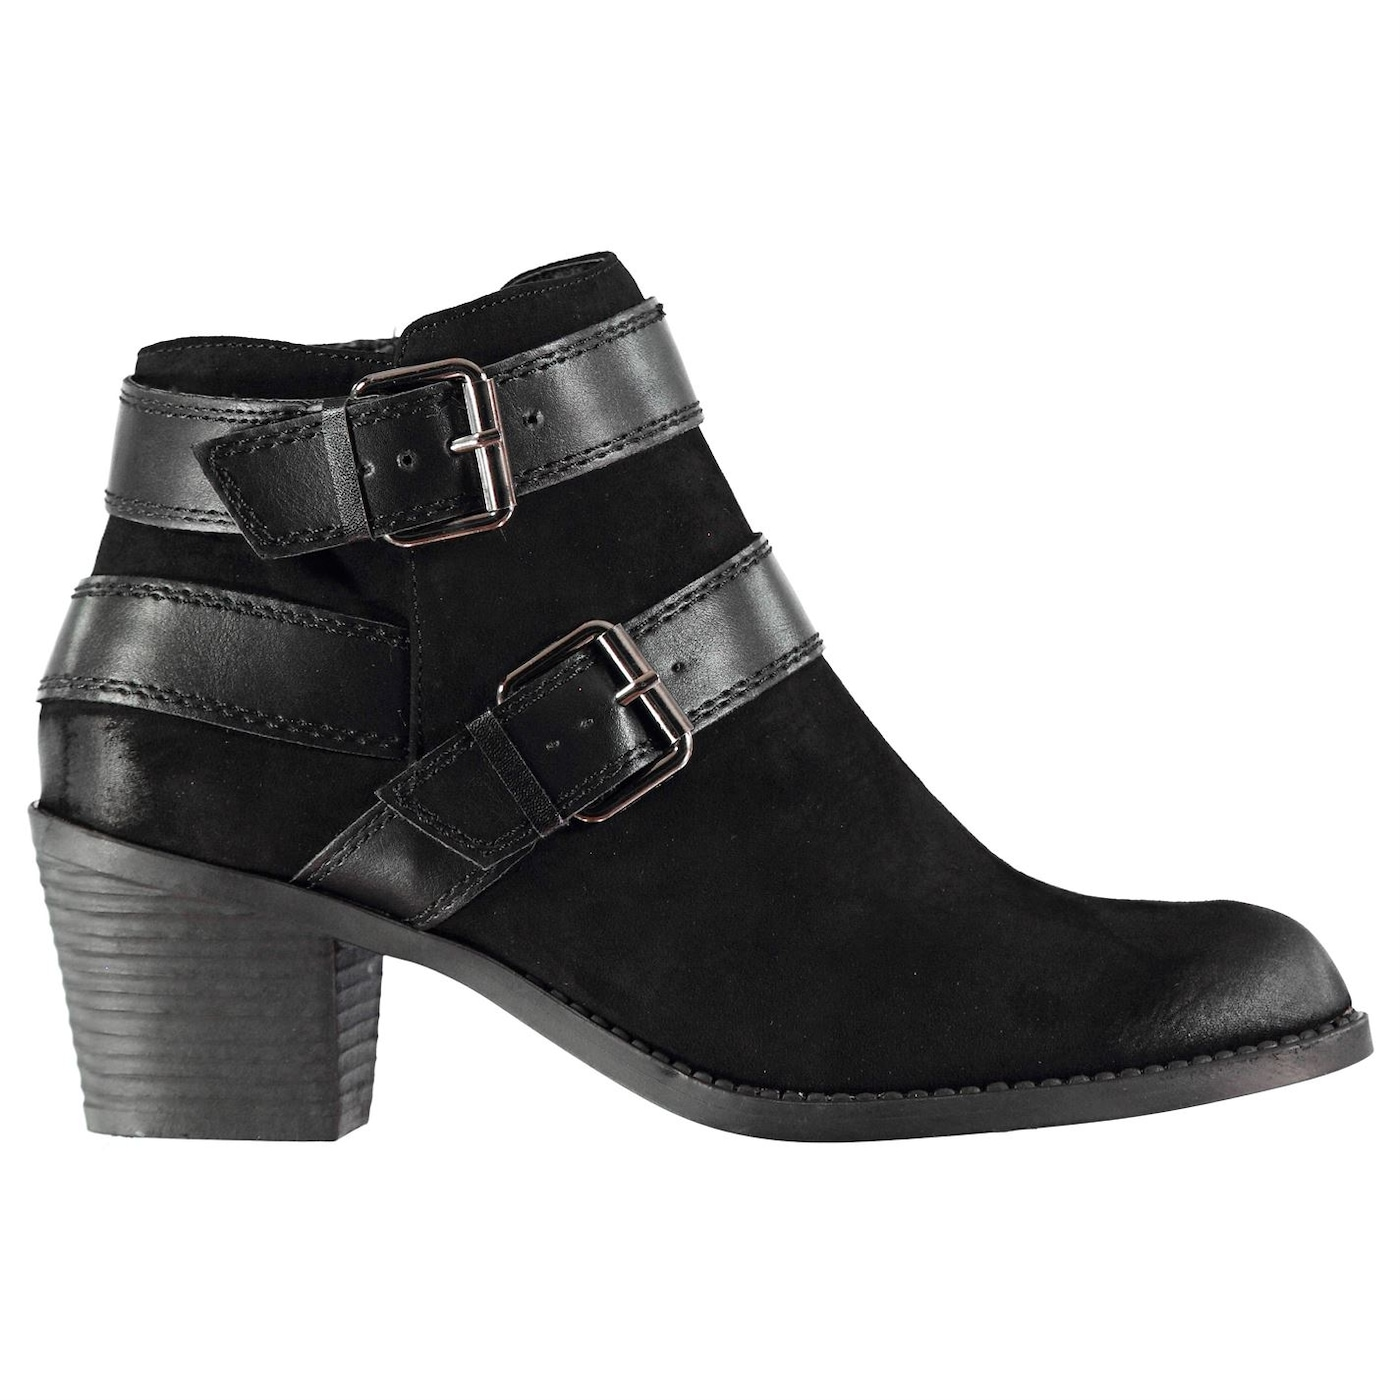 Dolcis Quincy Boots